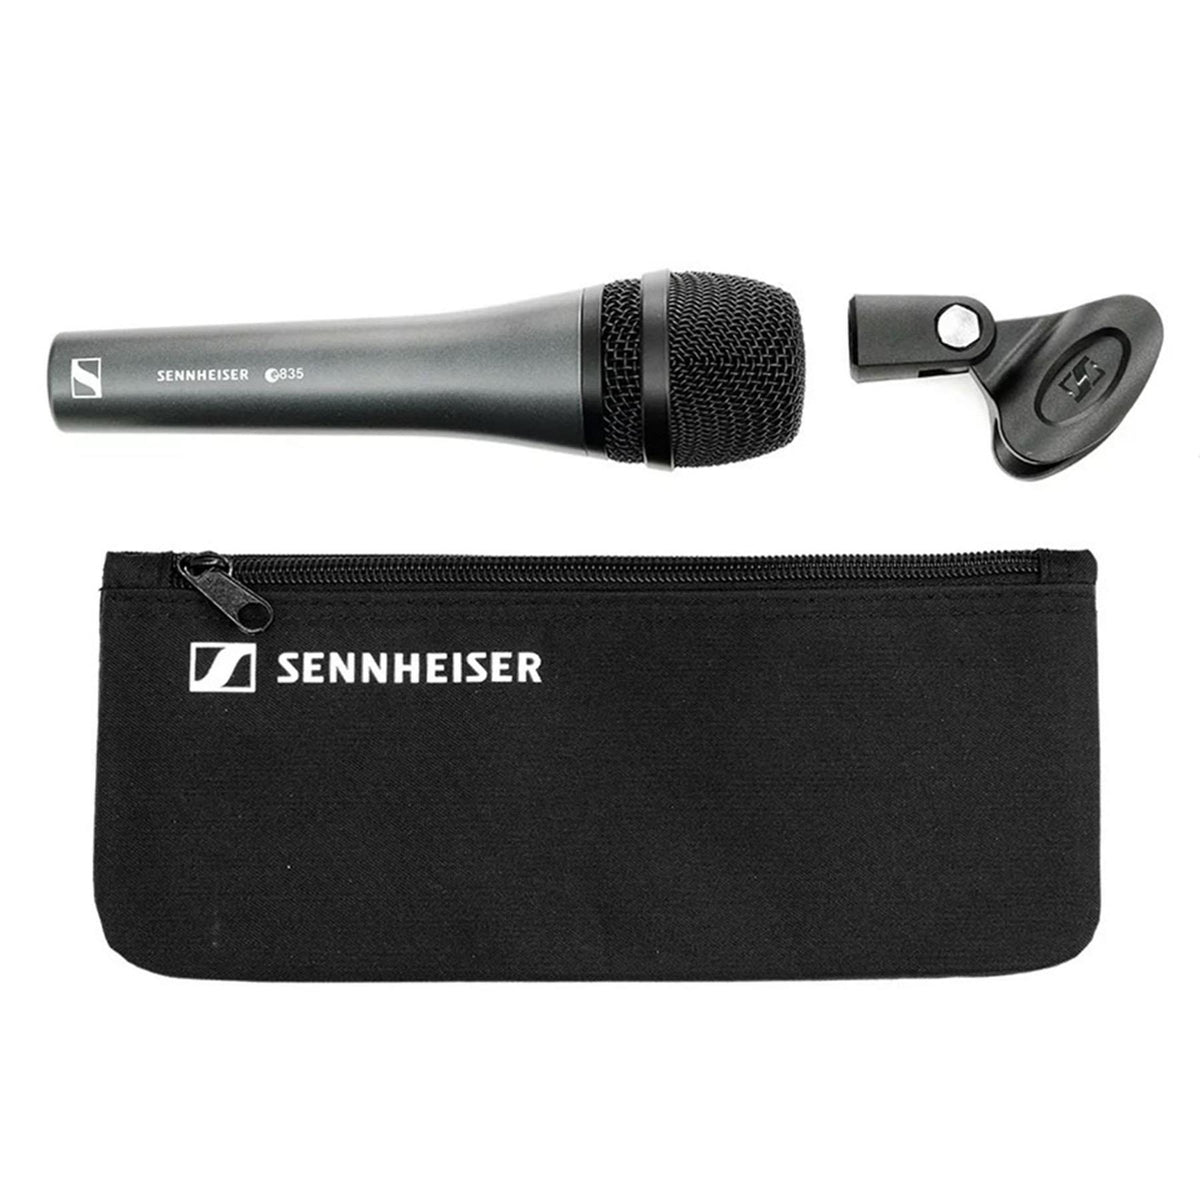 Sennheiser e835 Microphone Bundle with 20-foot XLR Cable